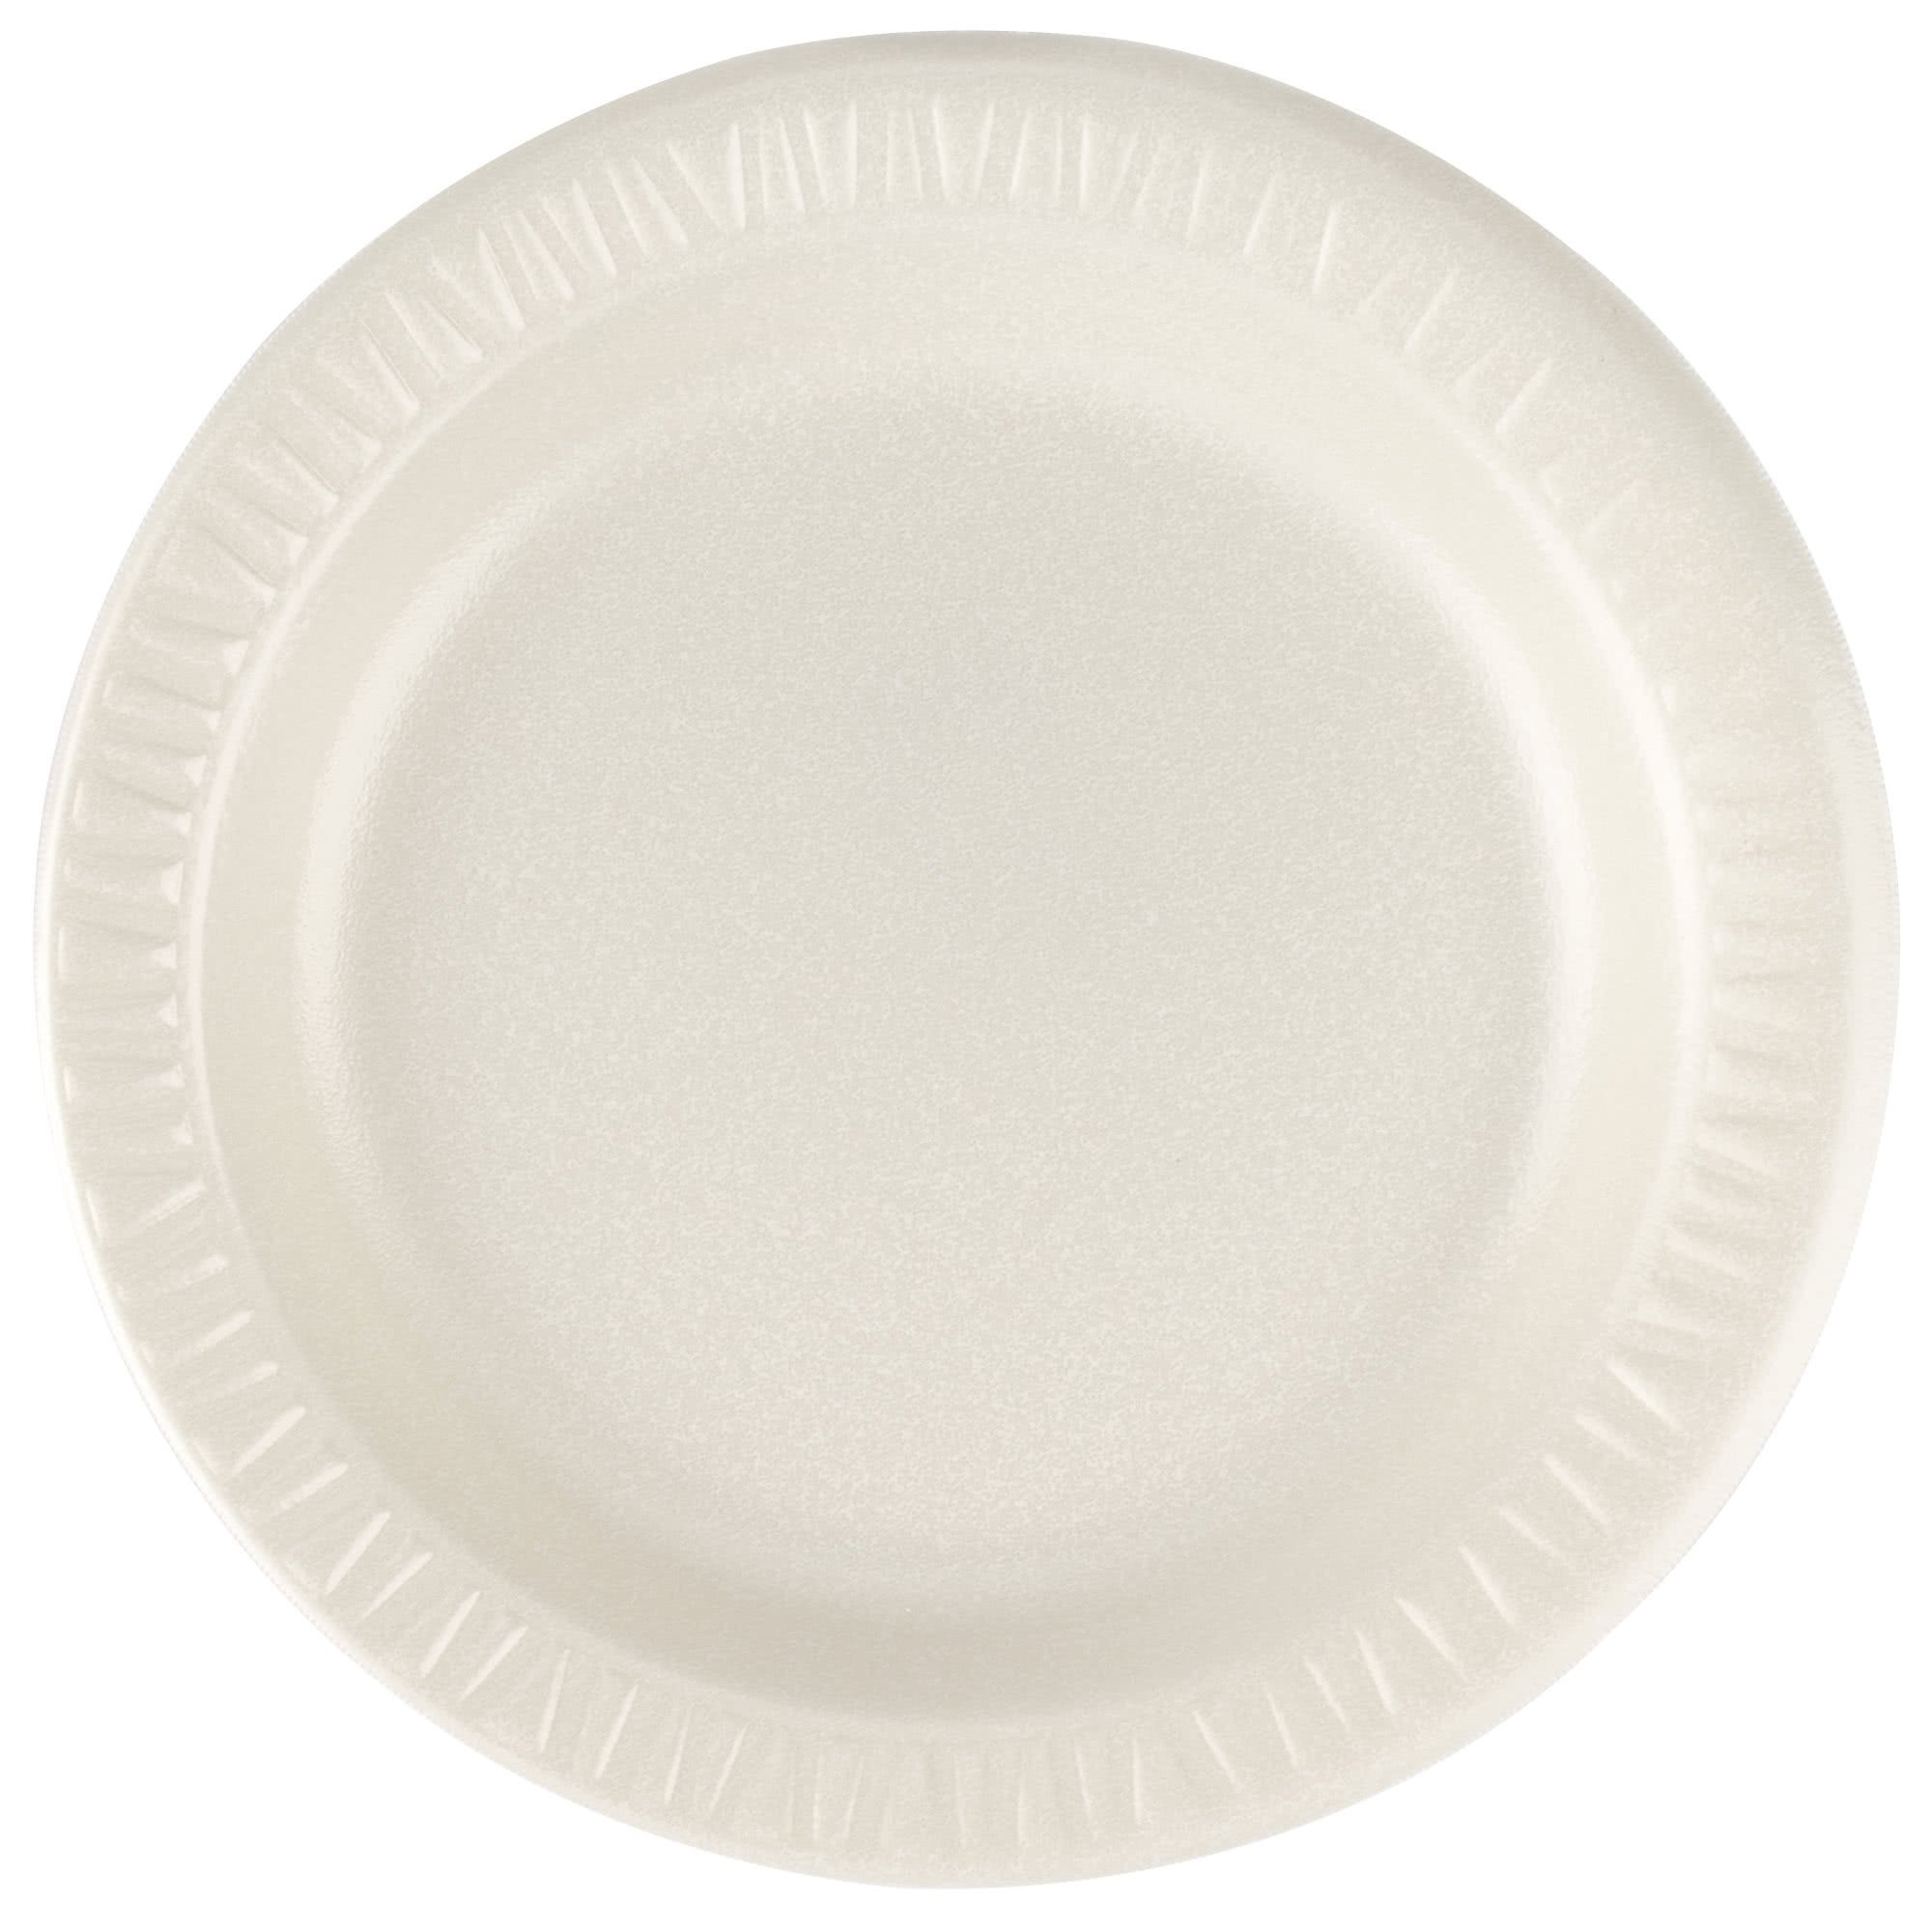 TableTop King 7PHQR Quiet Classic 7'' Honey Laminated Round Foam Plate - 1000/Case by TableTop King